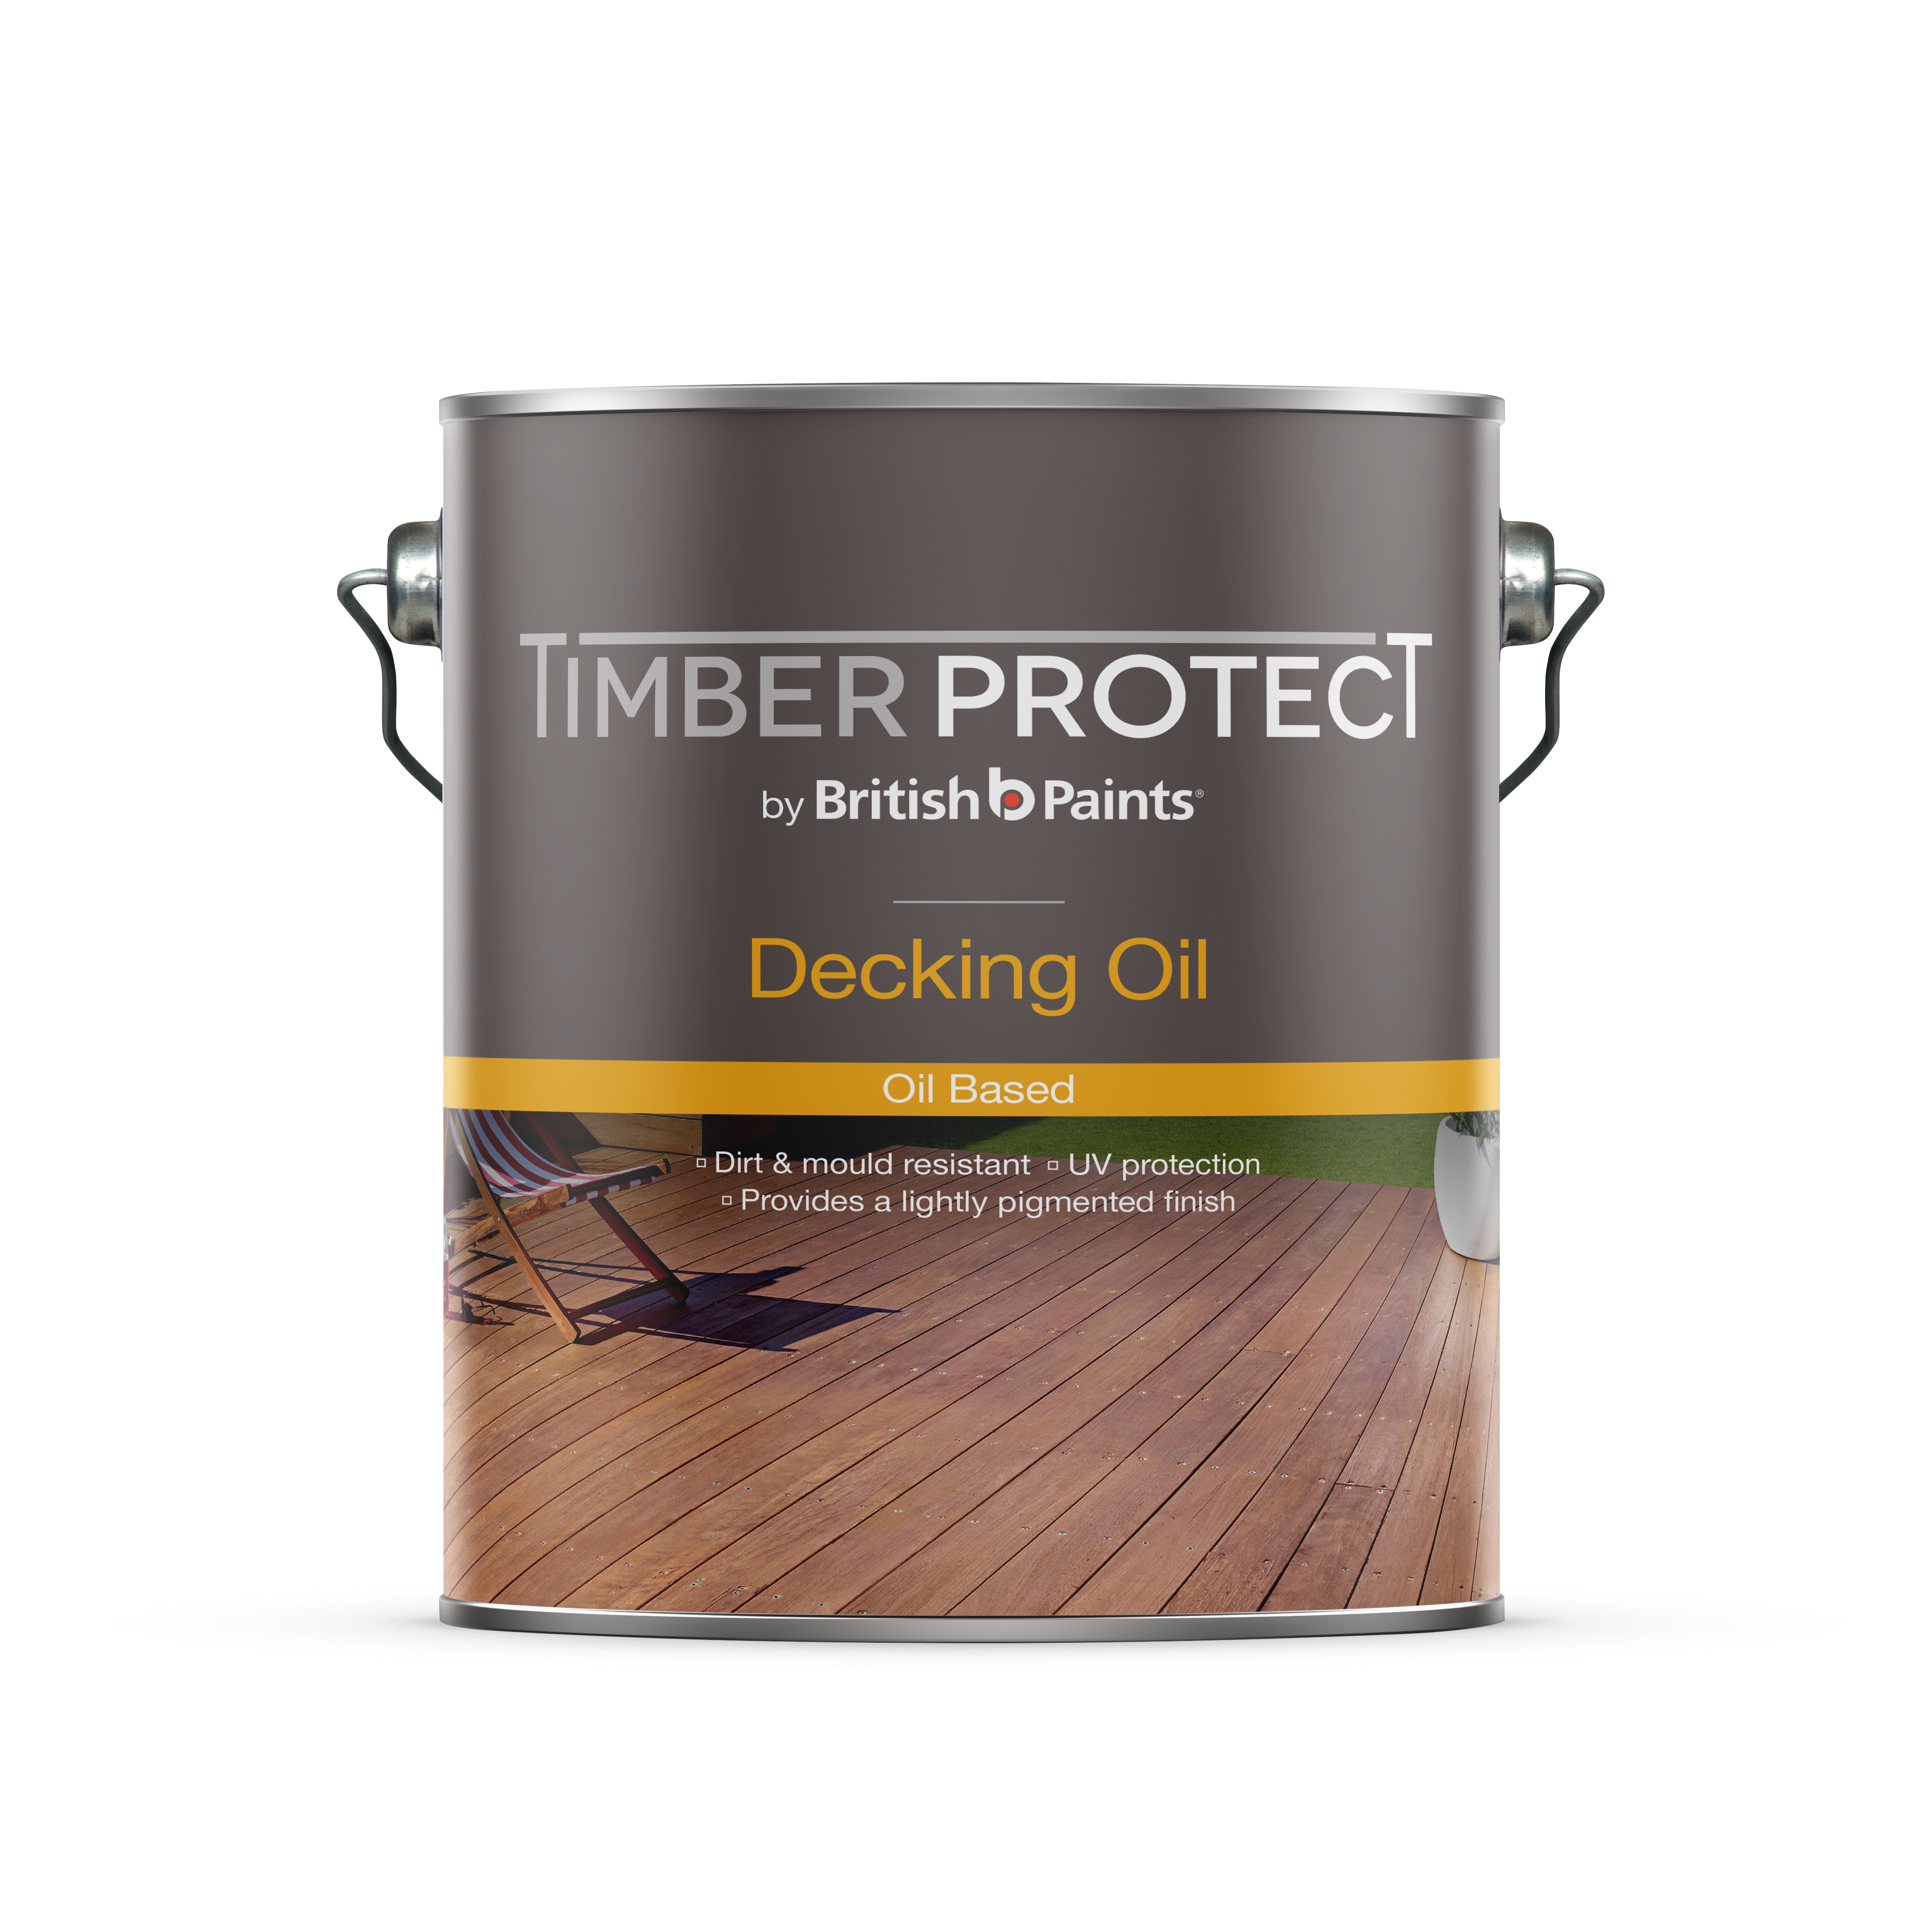 timber protect decking oil oil based british paints